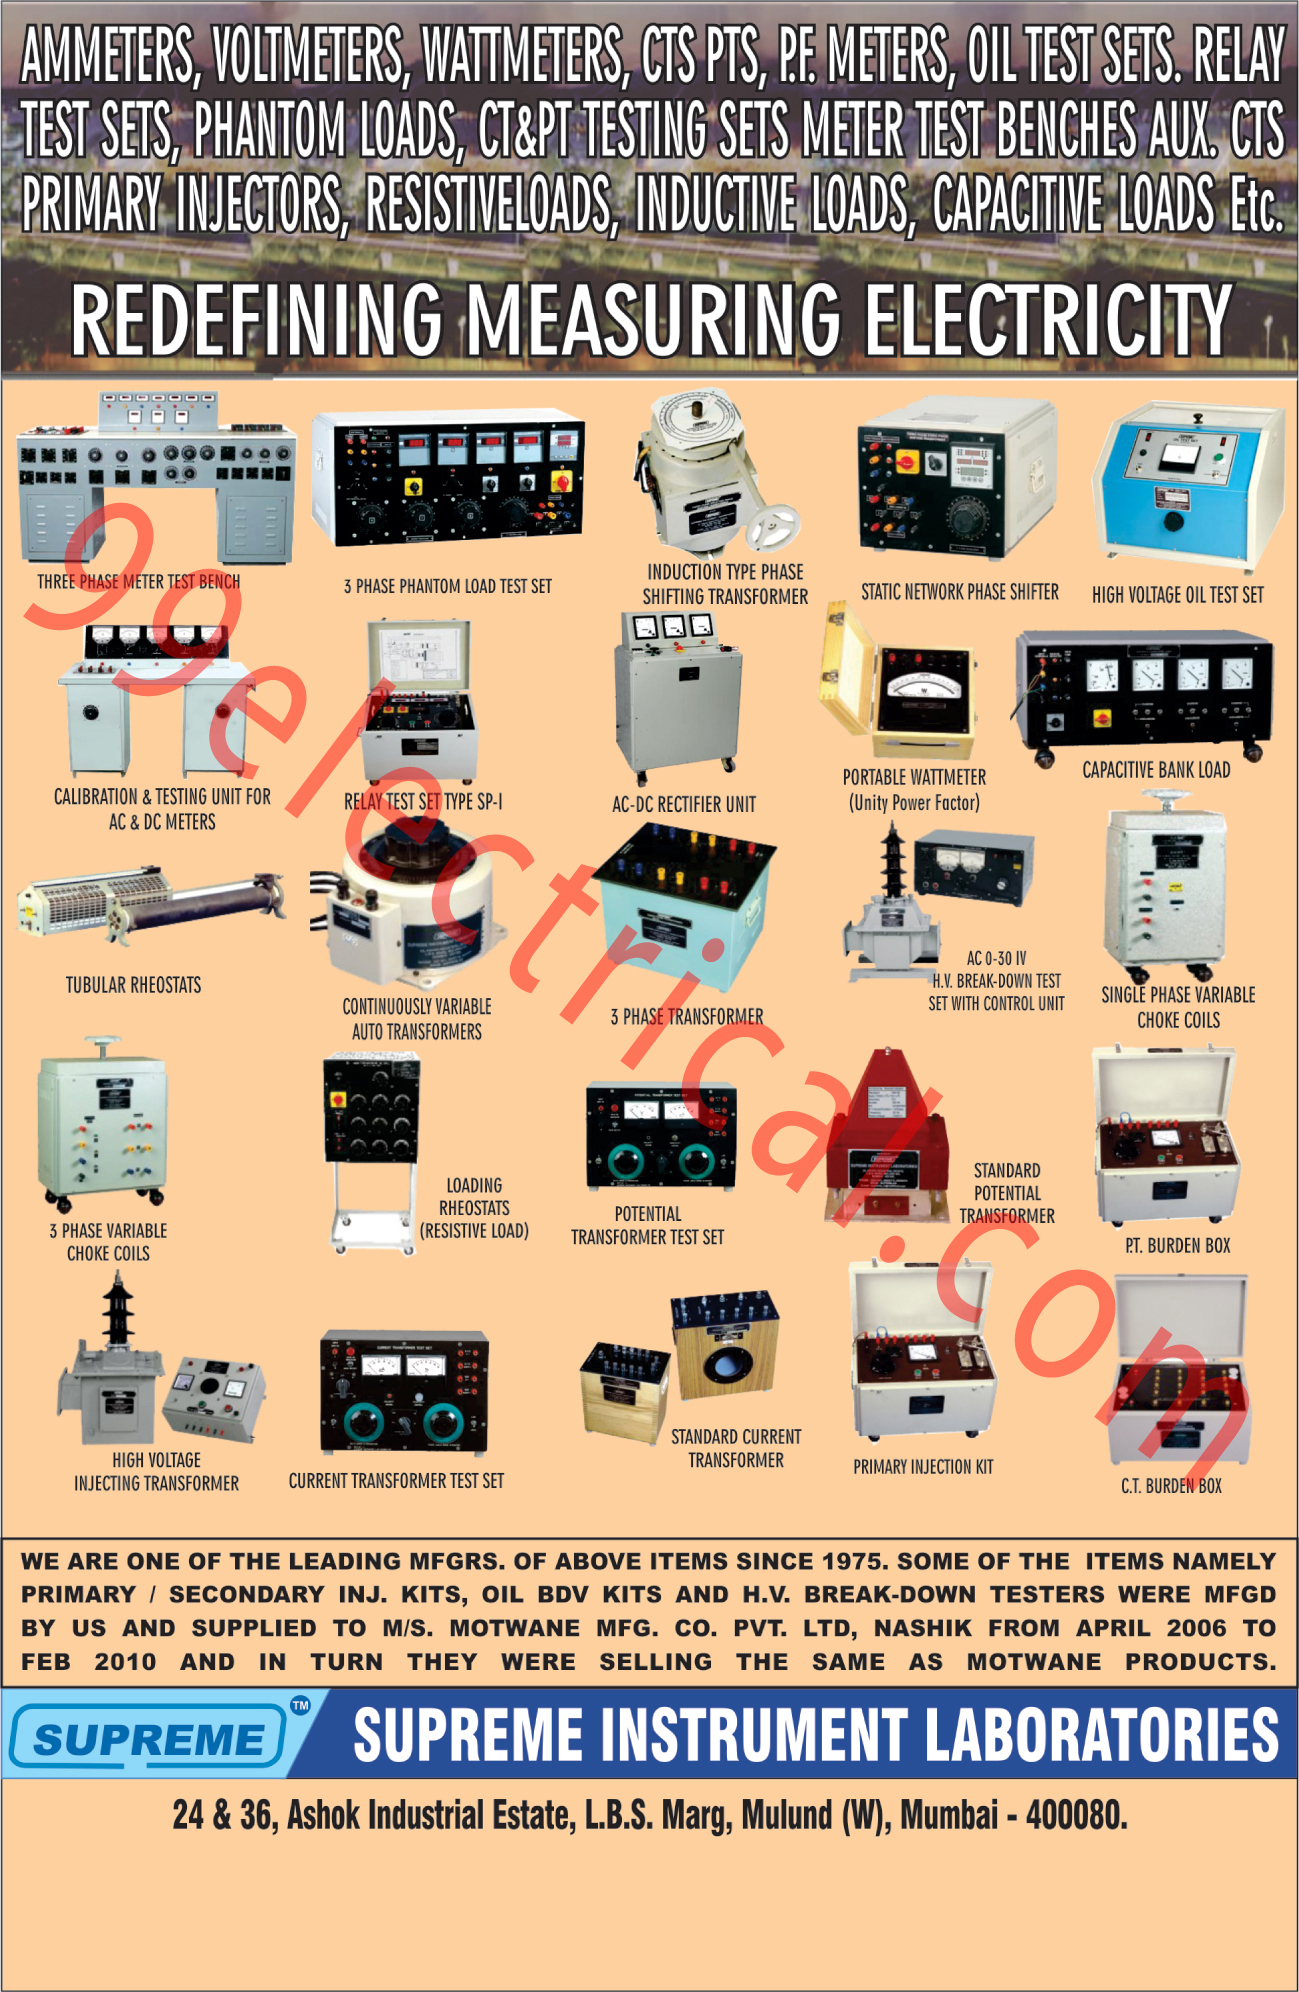 Ammeters, Voltmeters, Volt Meters, Watt meters, PF Meters, Oil Test Sets, Relay Test Sets, Phantom Loads, CT Testing Sets, PT Testing Sets, Three Phase Meter Test Benches, Three Phase Phantom Load Test Sets, Induction Type Phase Shifting Transformers, Static Network Phase Shifters, AC Meter Calibrations, DC Meter Calibrations, AC Meter Testing Units, DC Meter Testing Units, Ac DC Rectifier Units, Portable Wattmeters, Capacitive Bank Loads, Tubular Rheostats, Continuously Variable Auto Transformers, Three Phase Transformers, HV Break Down Test Set With Control Units, Single Phase Variable Choke Coils, Three Phase Variable Choke Coils, Loading Rheostats, potential Transformer Test Sets, Standard Potential Transformers,  PT Burden Boxes, Voltage Injecting Transformers, Current Transformer Test Sets, Current Transformers, Primary Injection Kits, CT Burden Boxes, Inductive Loads, Capacitive Loads, Restive Loads,Meters,Cts, Pts, Oil Test Set, Resistive Loads, Electrical Measuring Instruments, Transformer, AC DC Retifier Unit, Testing Unit, Meter Test Bench, CT PT Testing Sets, Standard Current Transformers